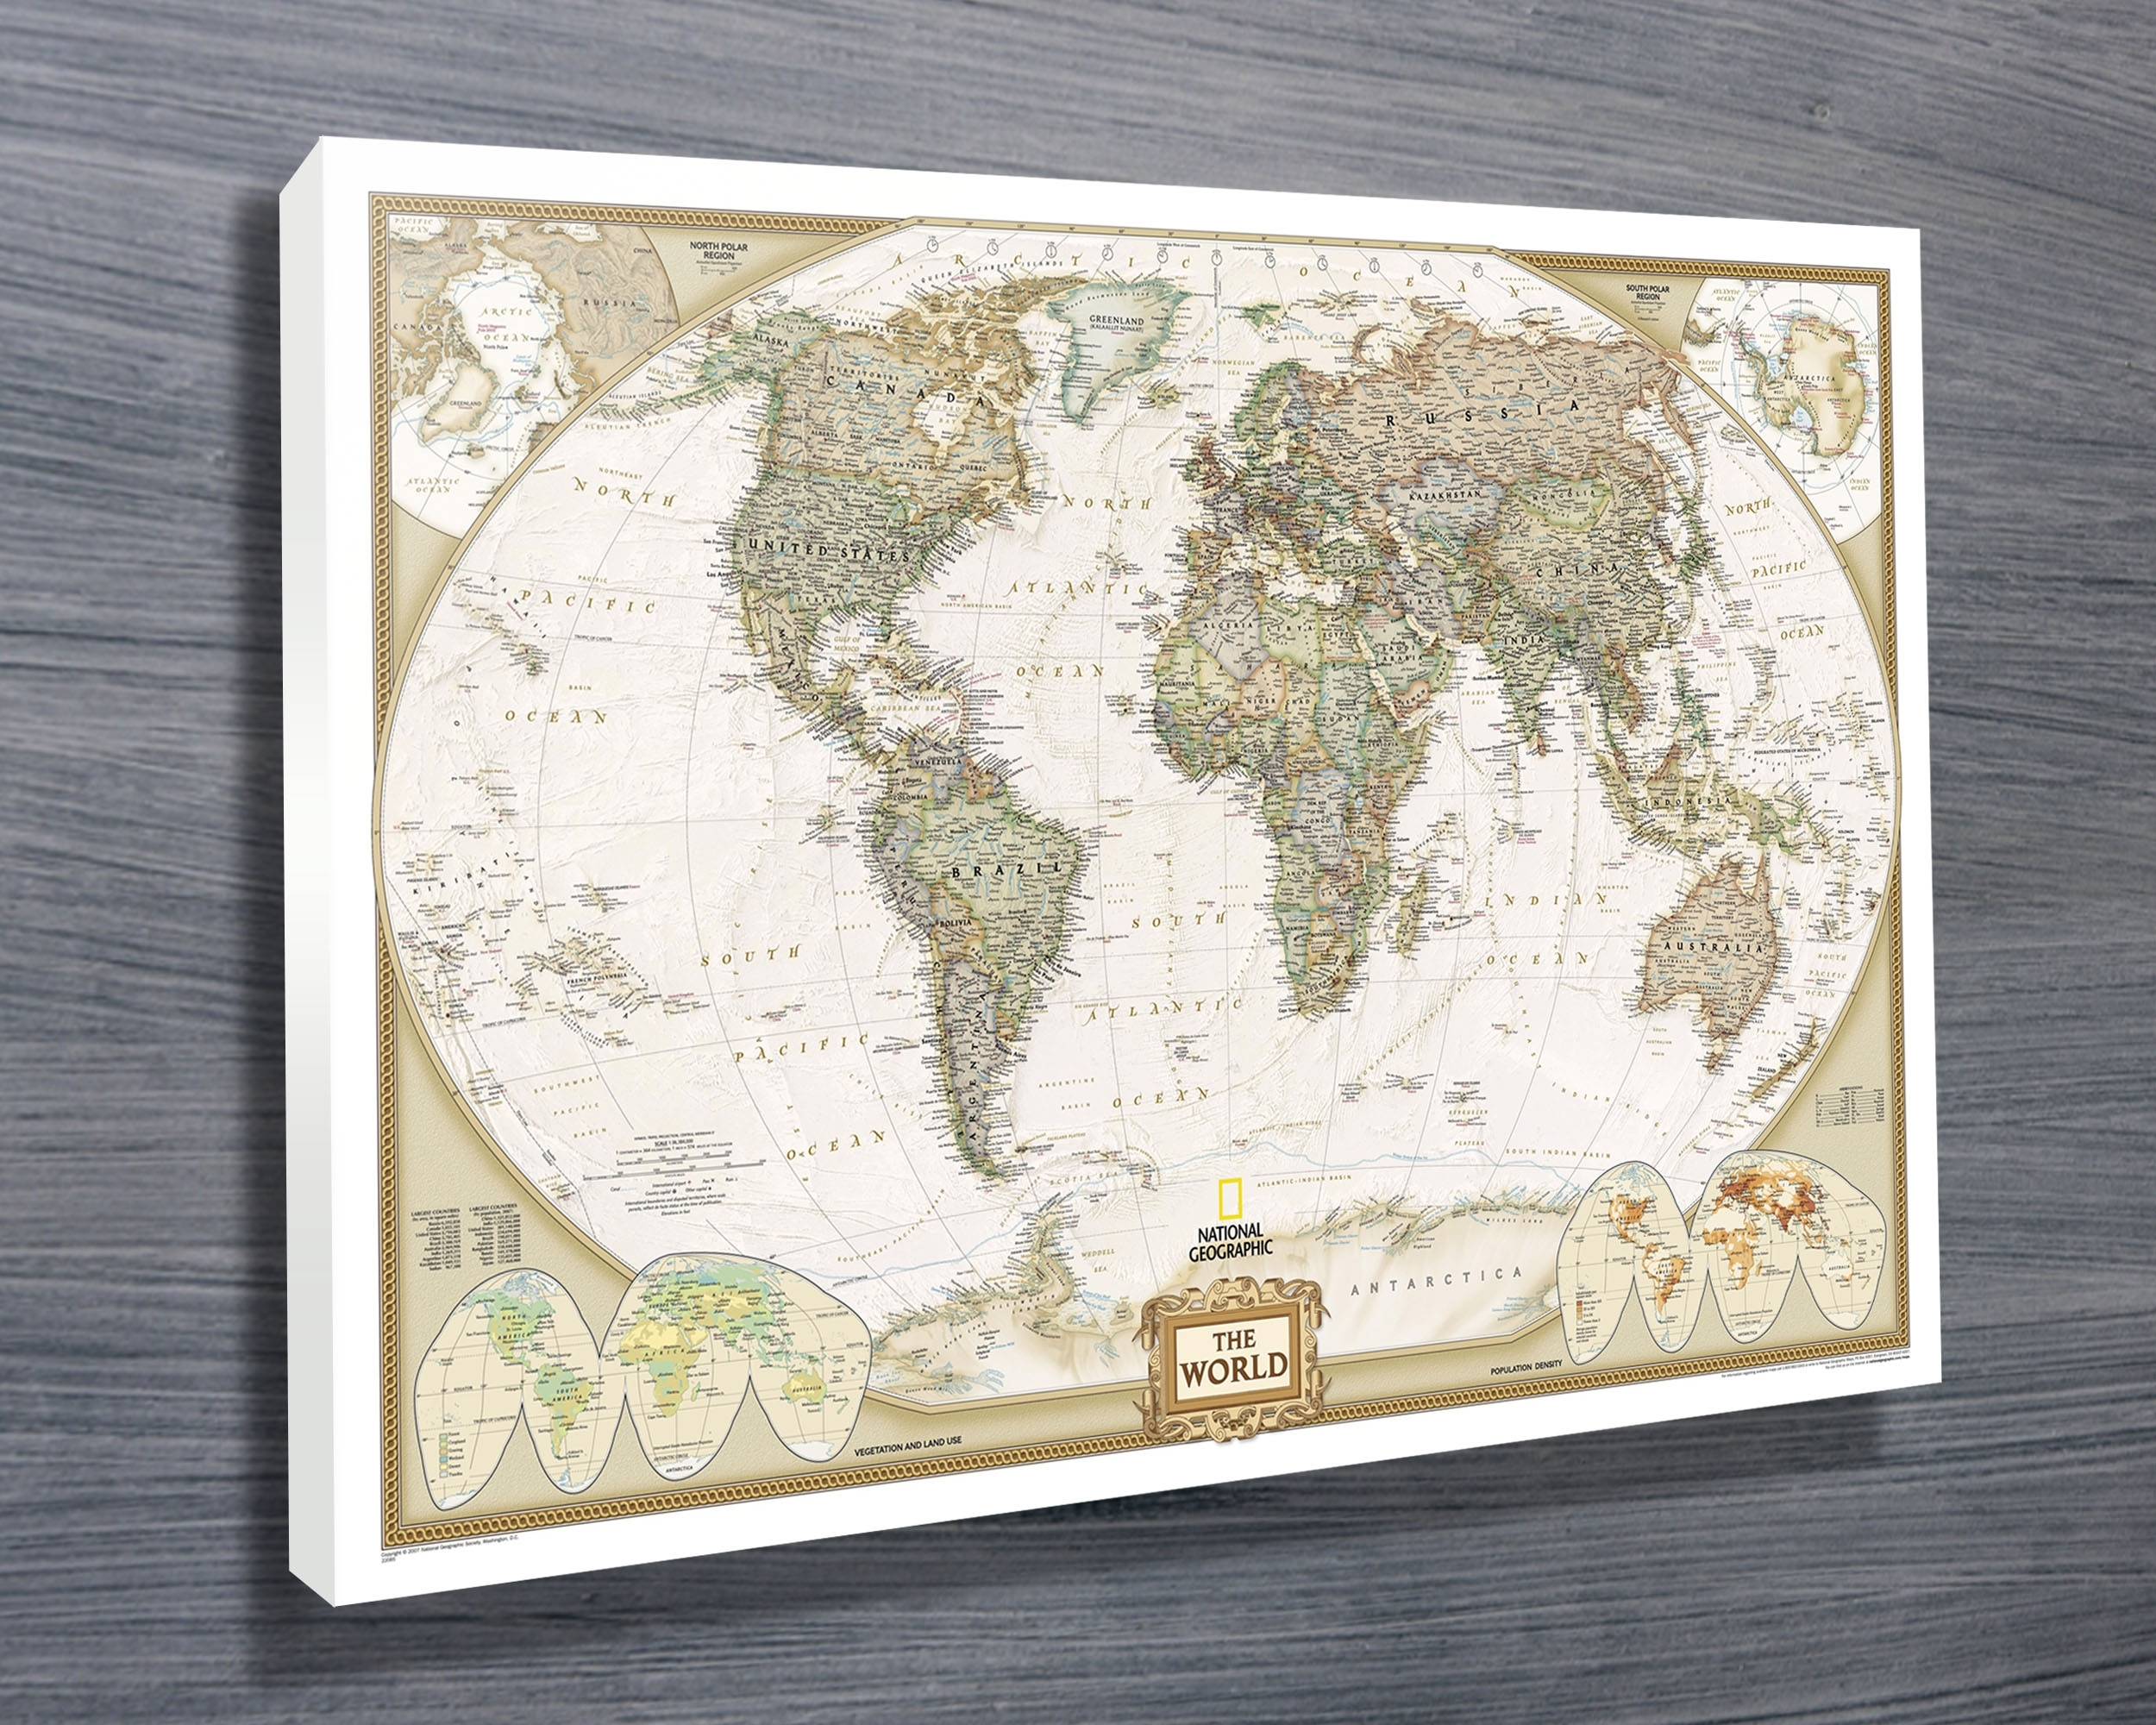 National Geographic Map - Canvas Prints Australia intended for Map Wall Art Prints (Image 9 of 20)